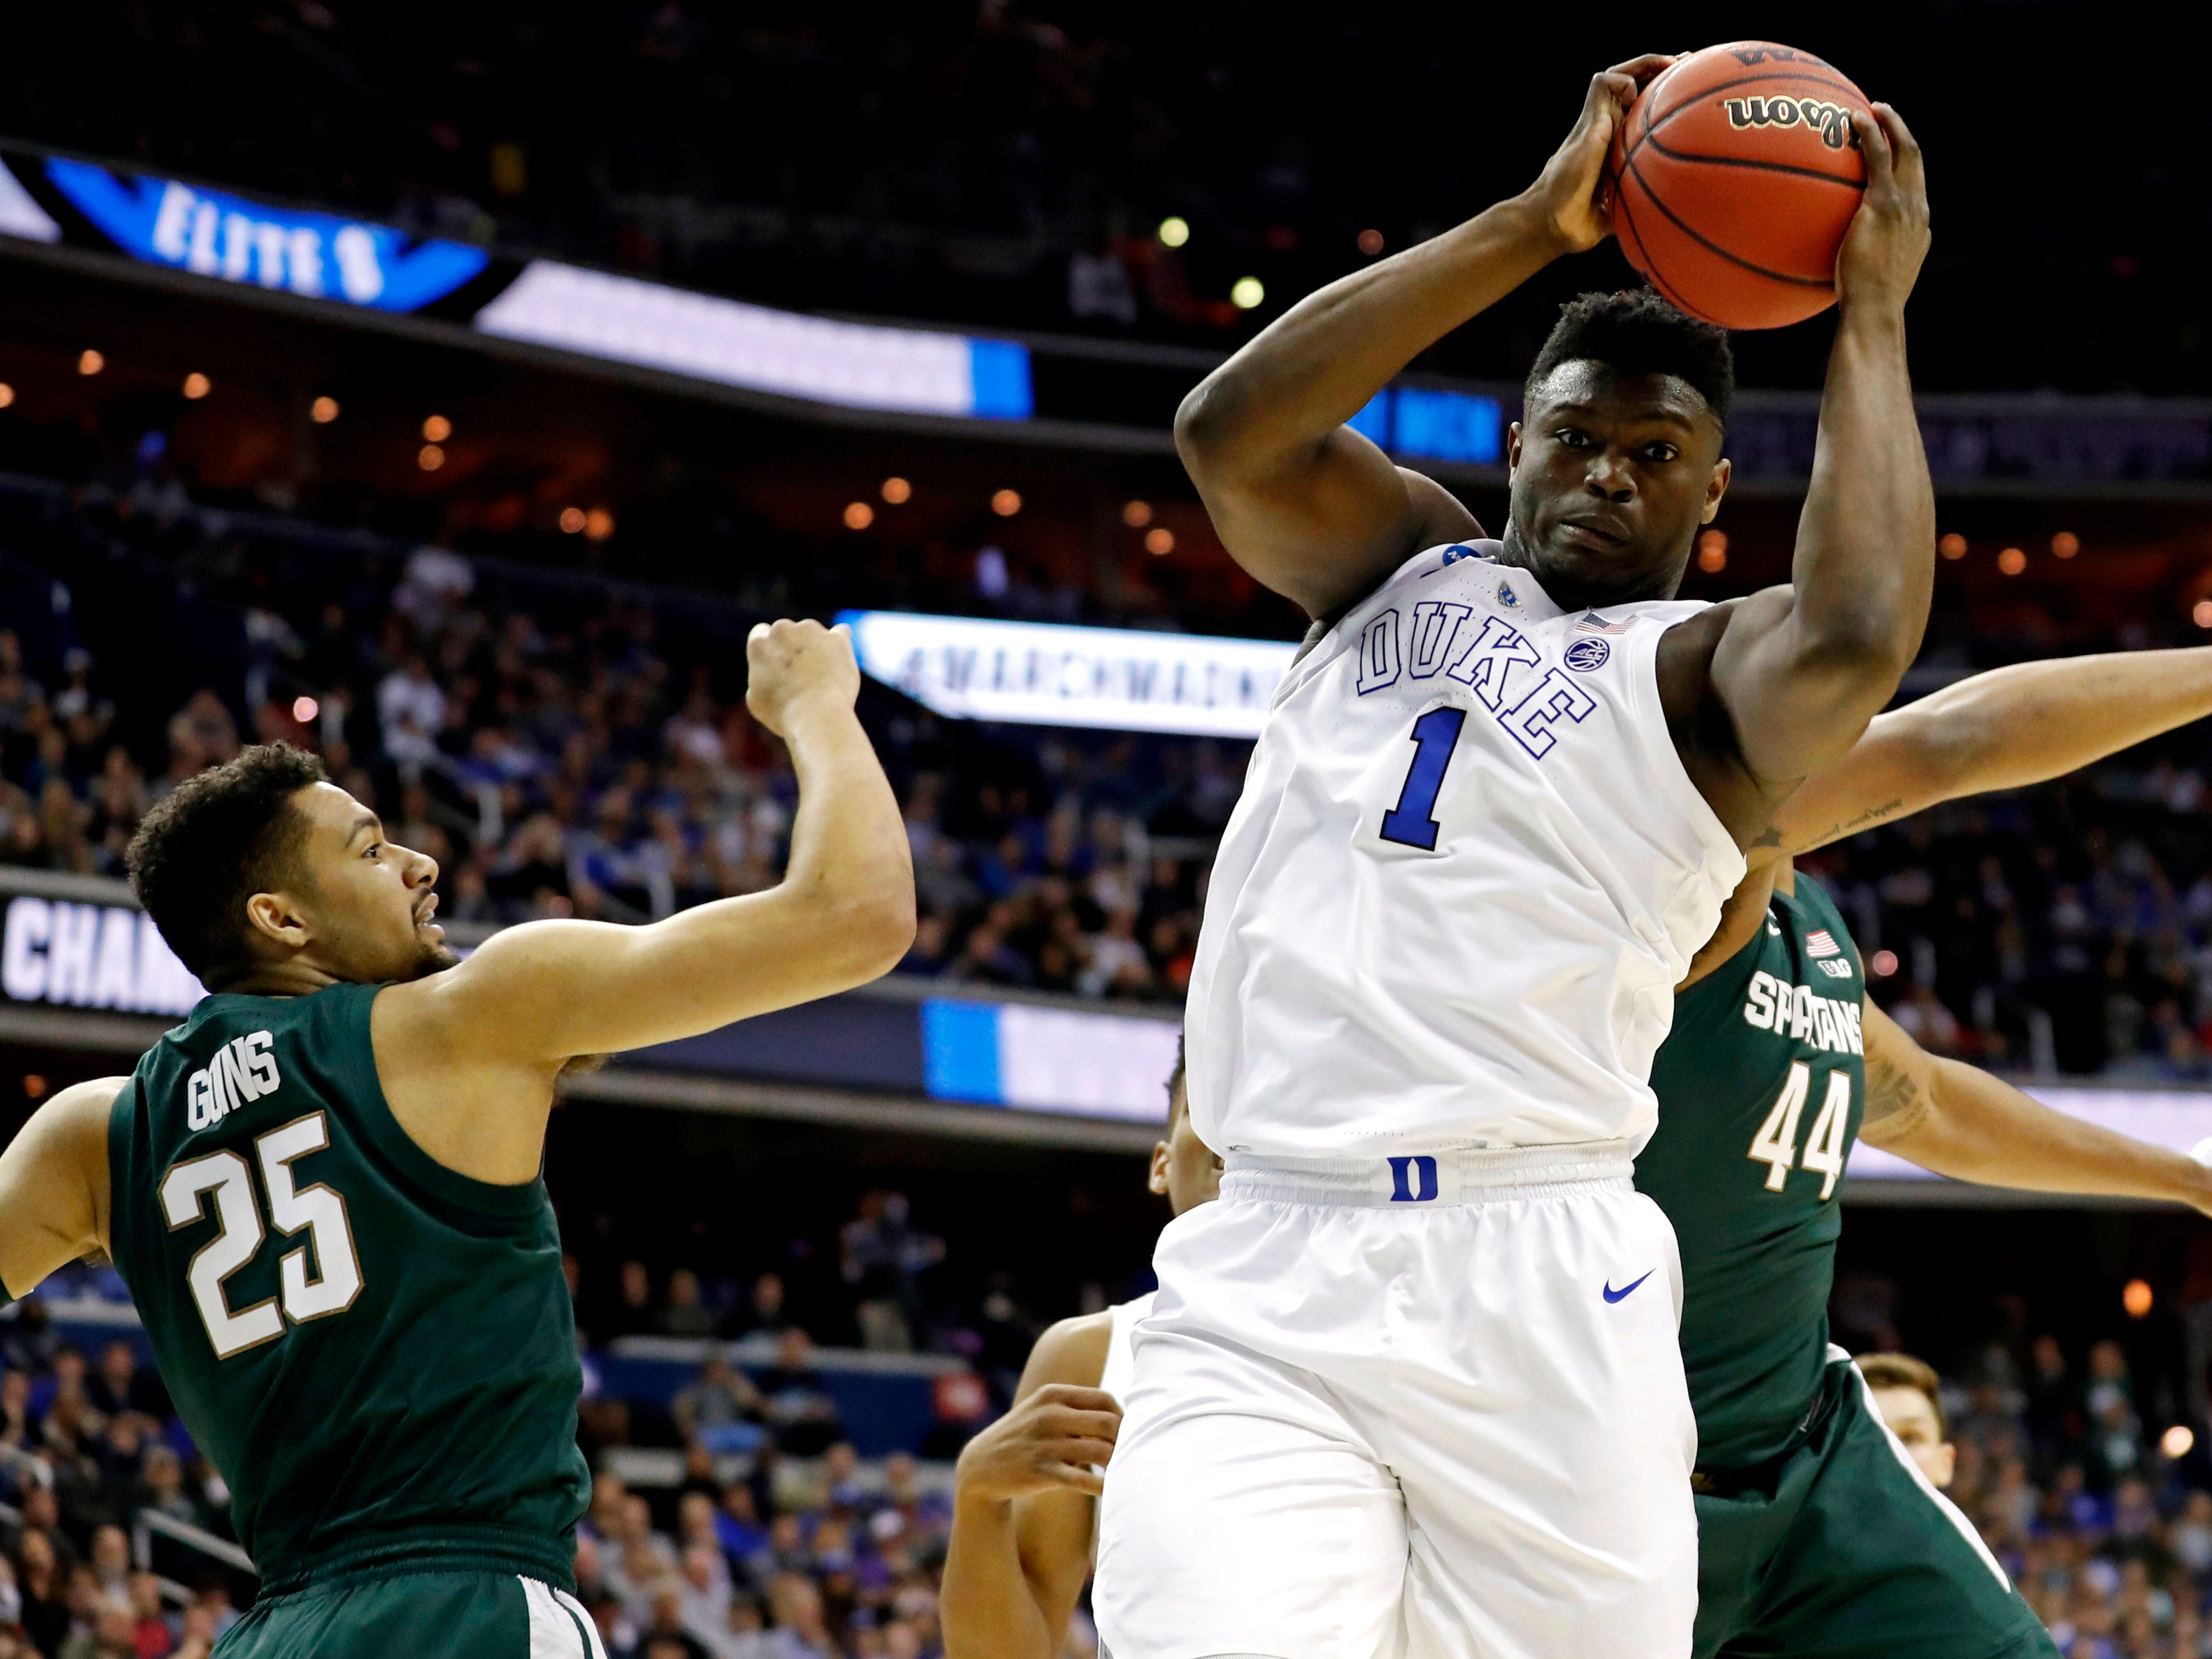 Mar 31, 2019; Washington, DC, USA; Duke Blue Devils forward Zion Williamson (1) grabs a rebound against Michigan State Spartans forward Nick Ward (44) and forward Kenny Goins (25) during the first half in the championship game of the east regional of the 2019 NCAA Tournament at Capital One Arena. Mandatory Credit: Geoff Burke-USA TODAY Sports